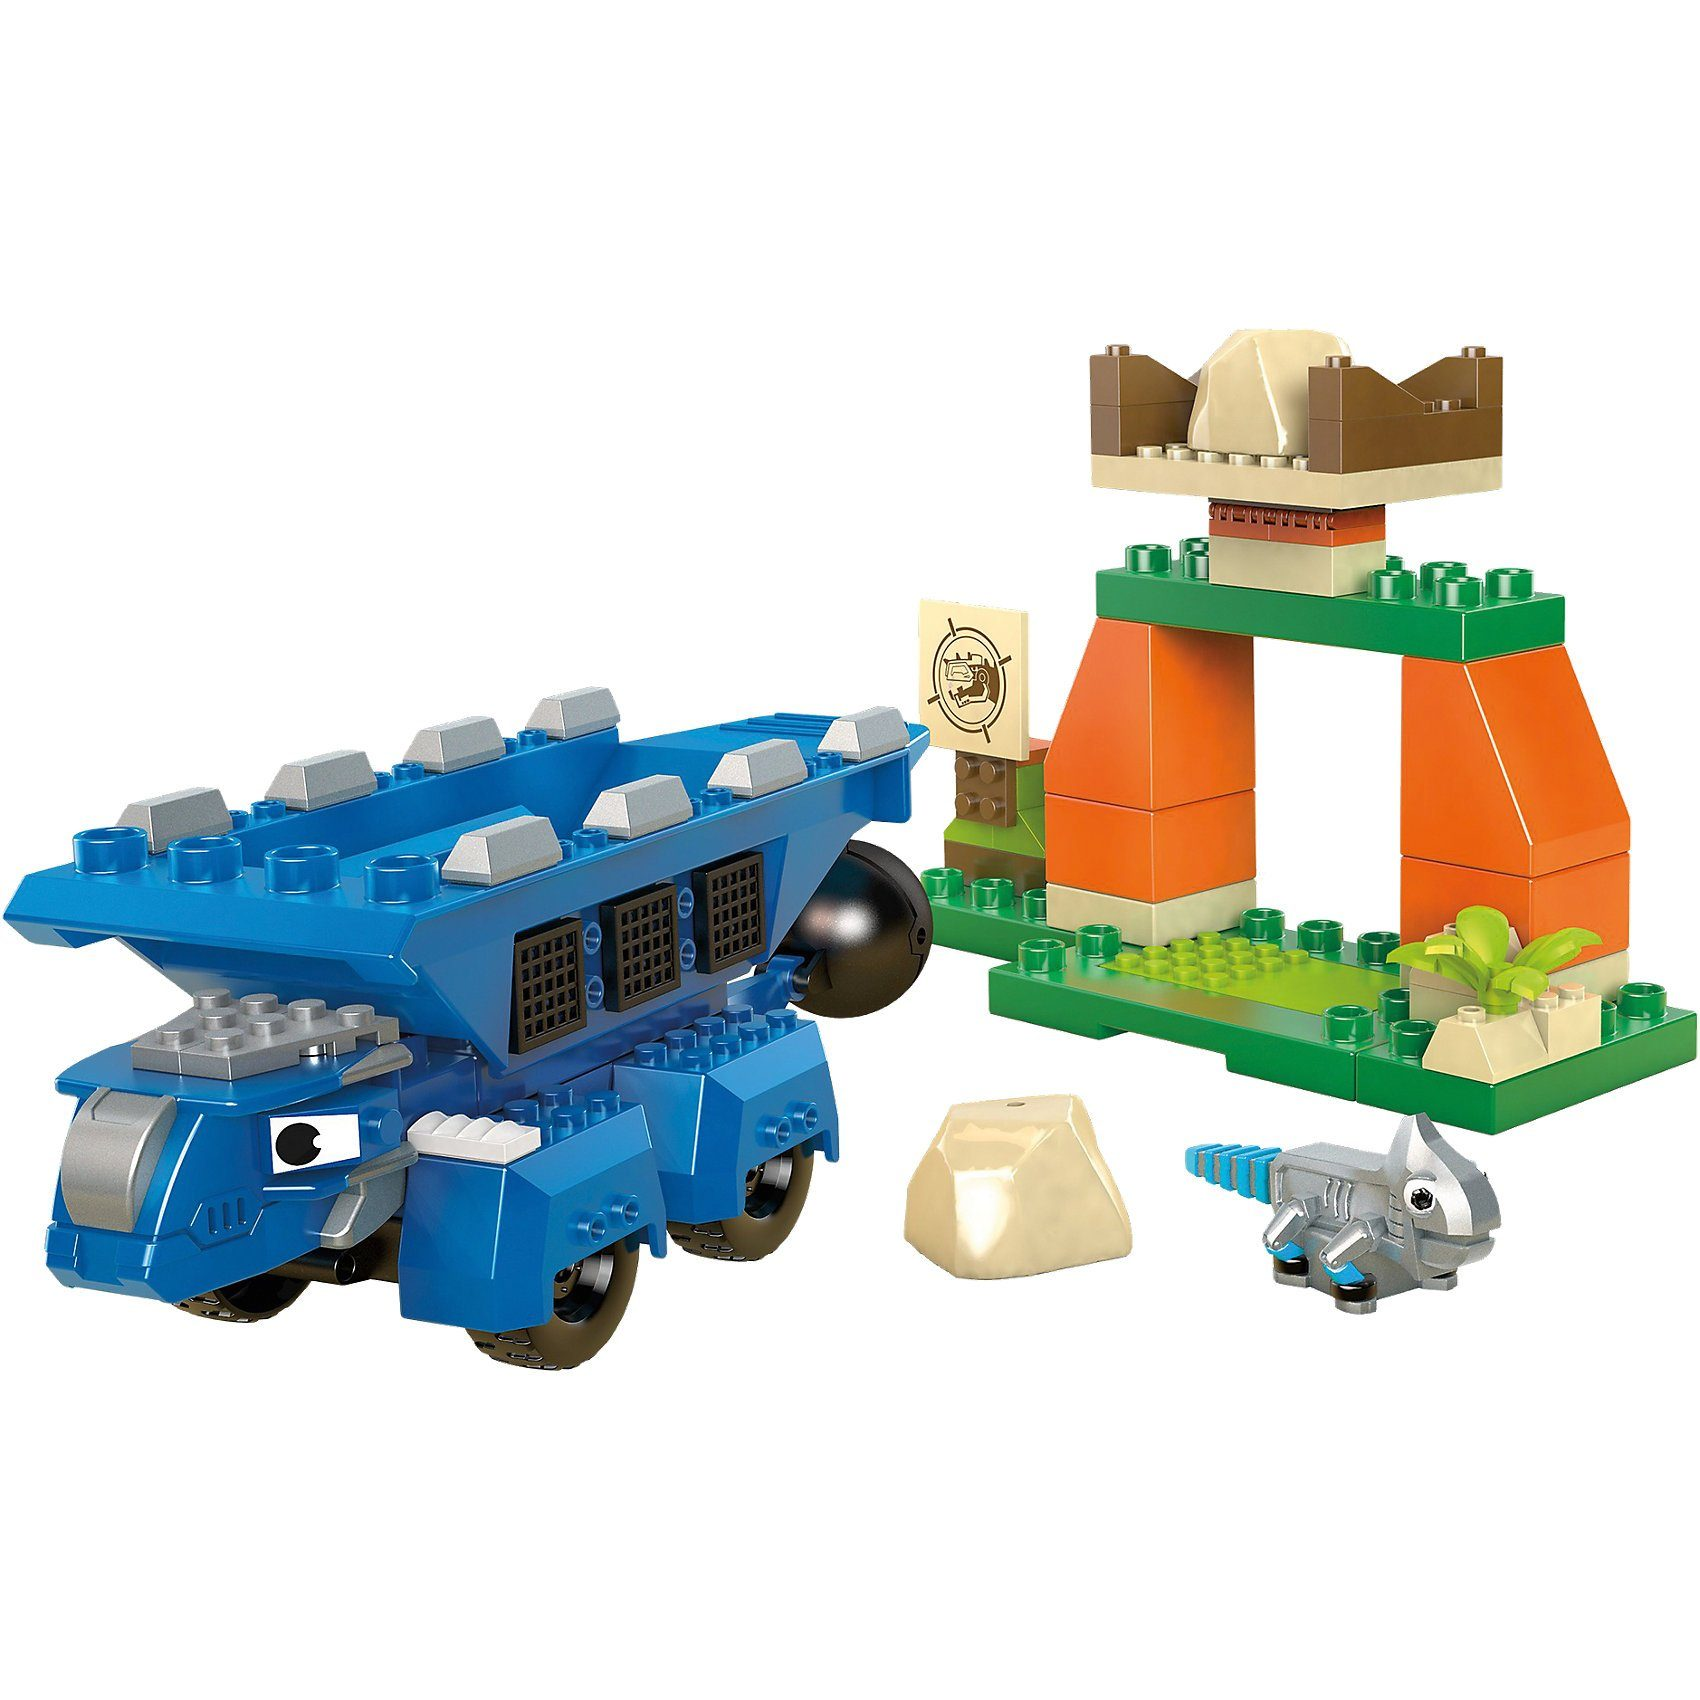 Mattel® Mega Construx Dinotrux Character & Mini Set Build